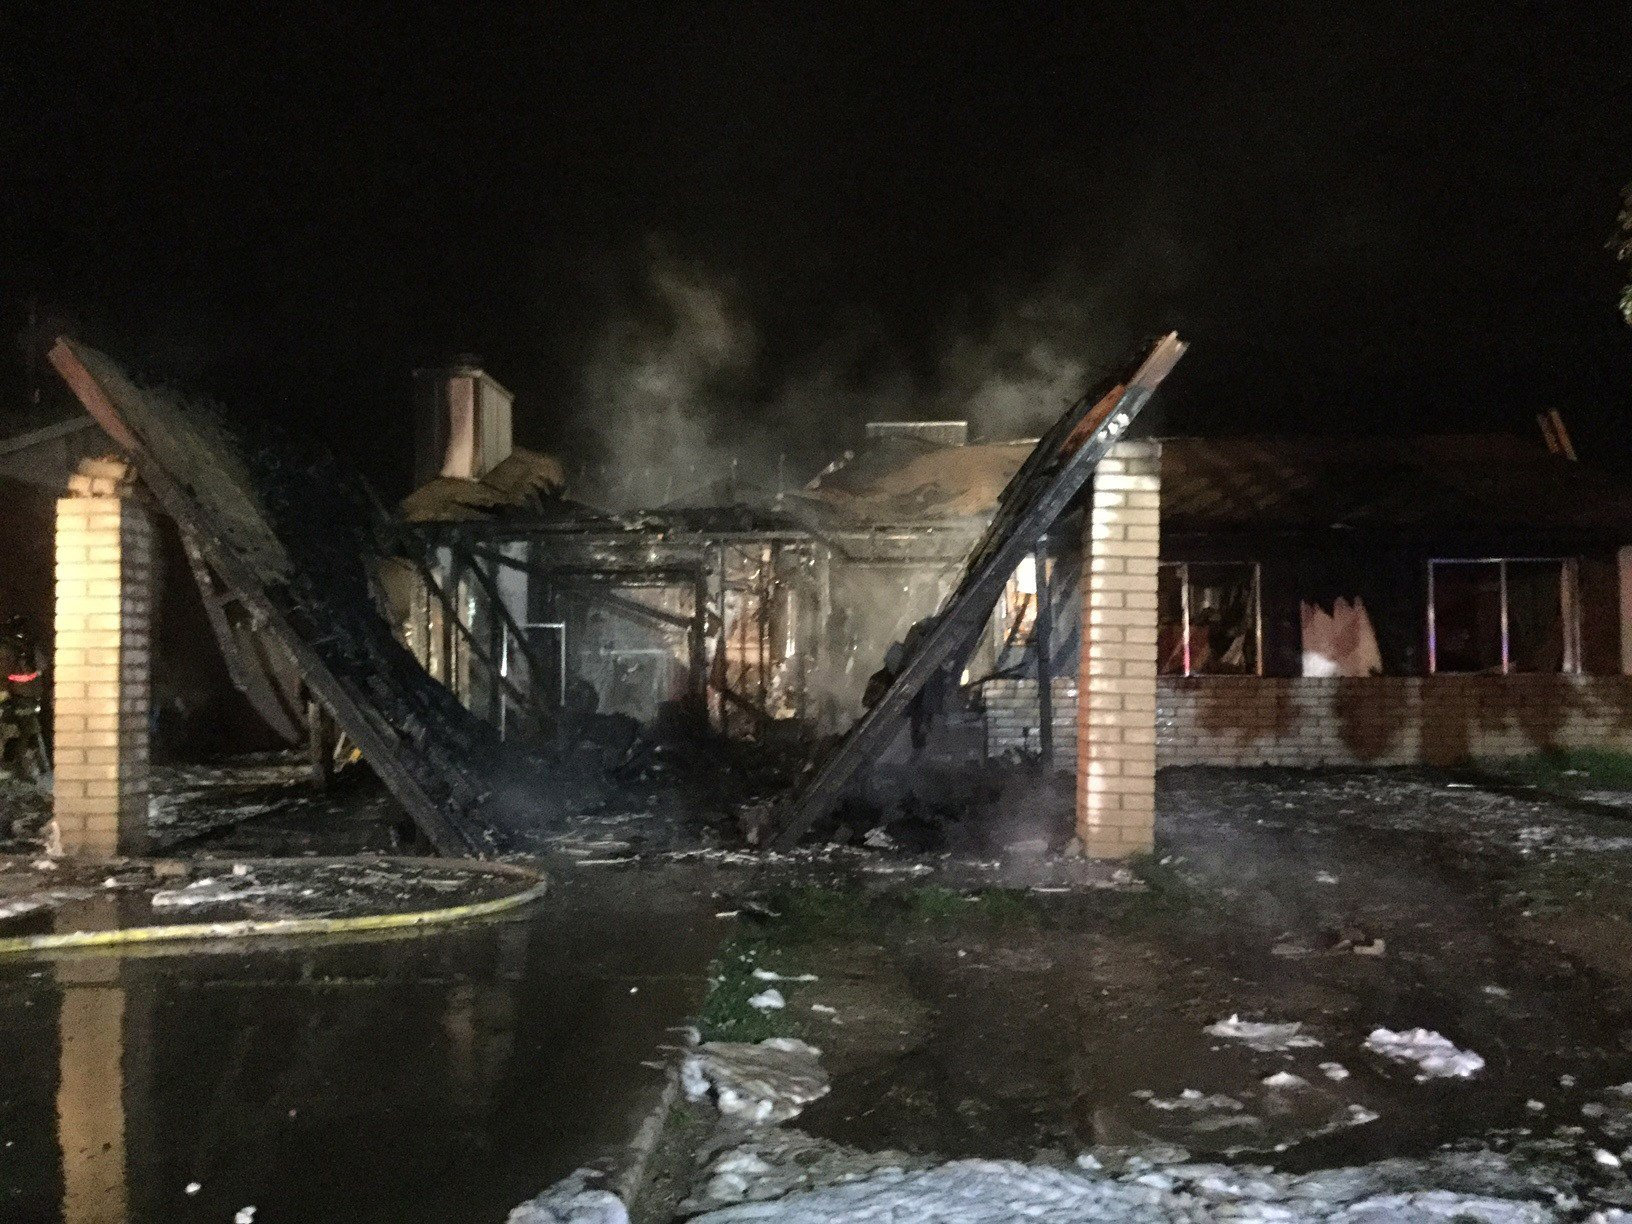 An early-morning fire guts a home in Phoenix. (Source: Phoenix Fire Department)